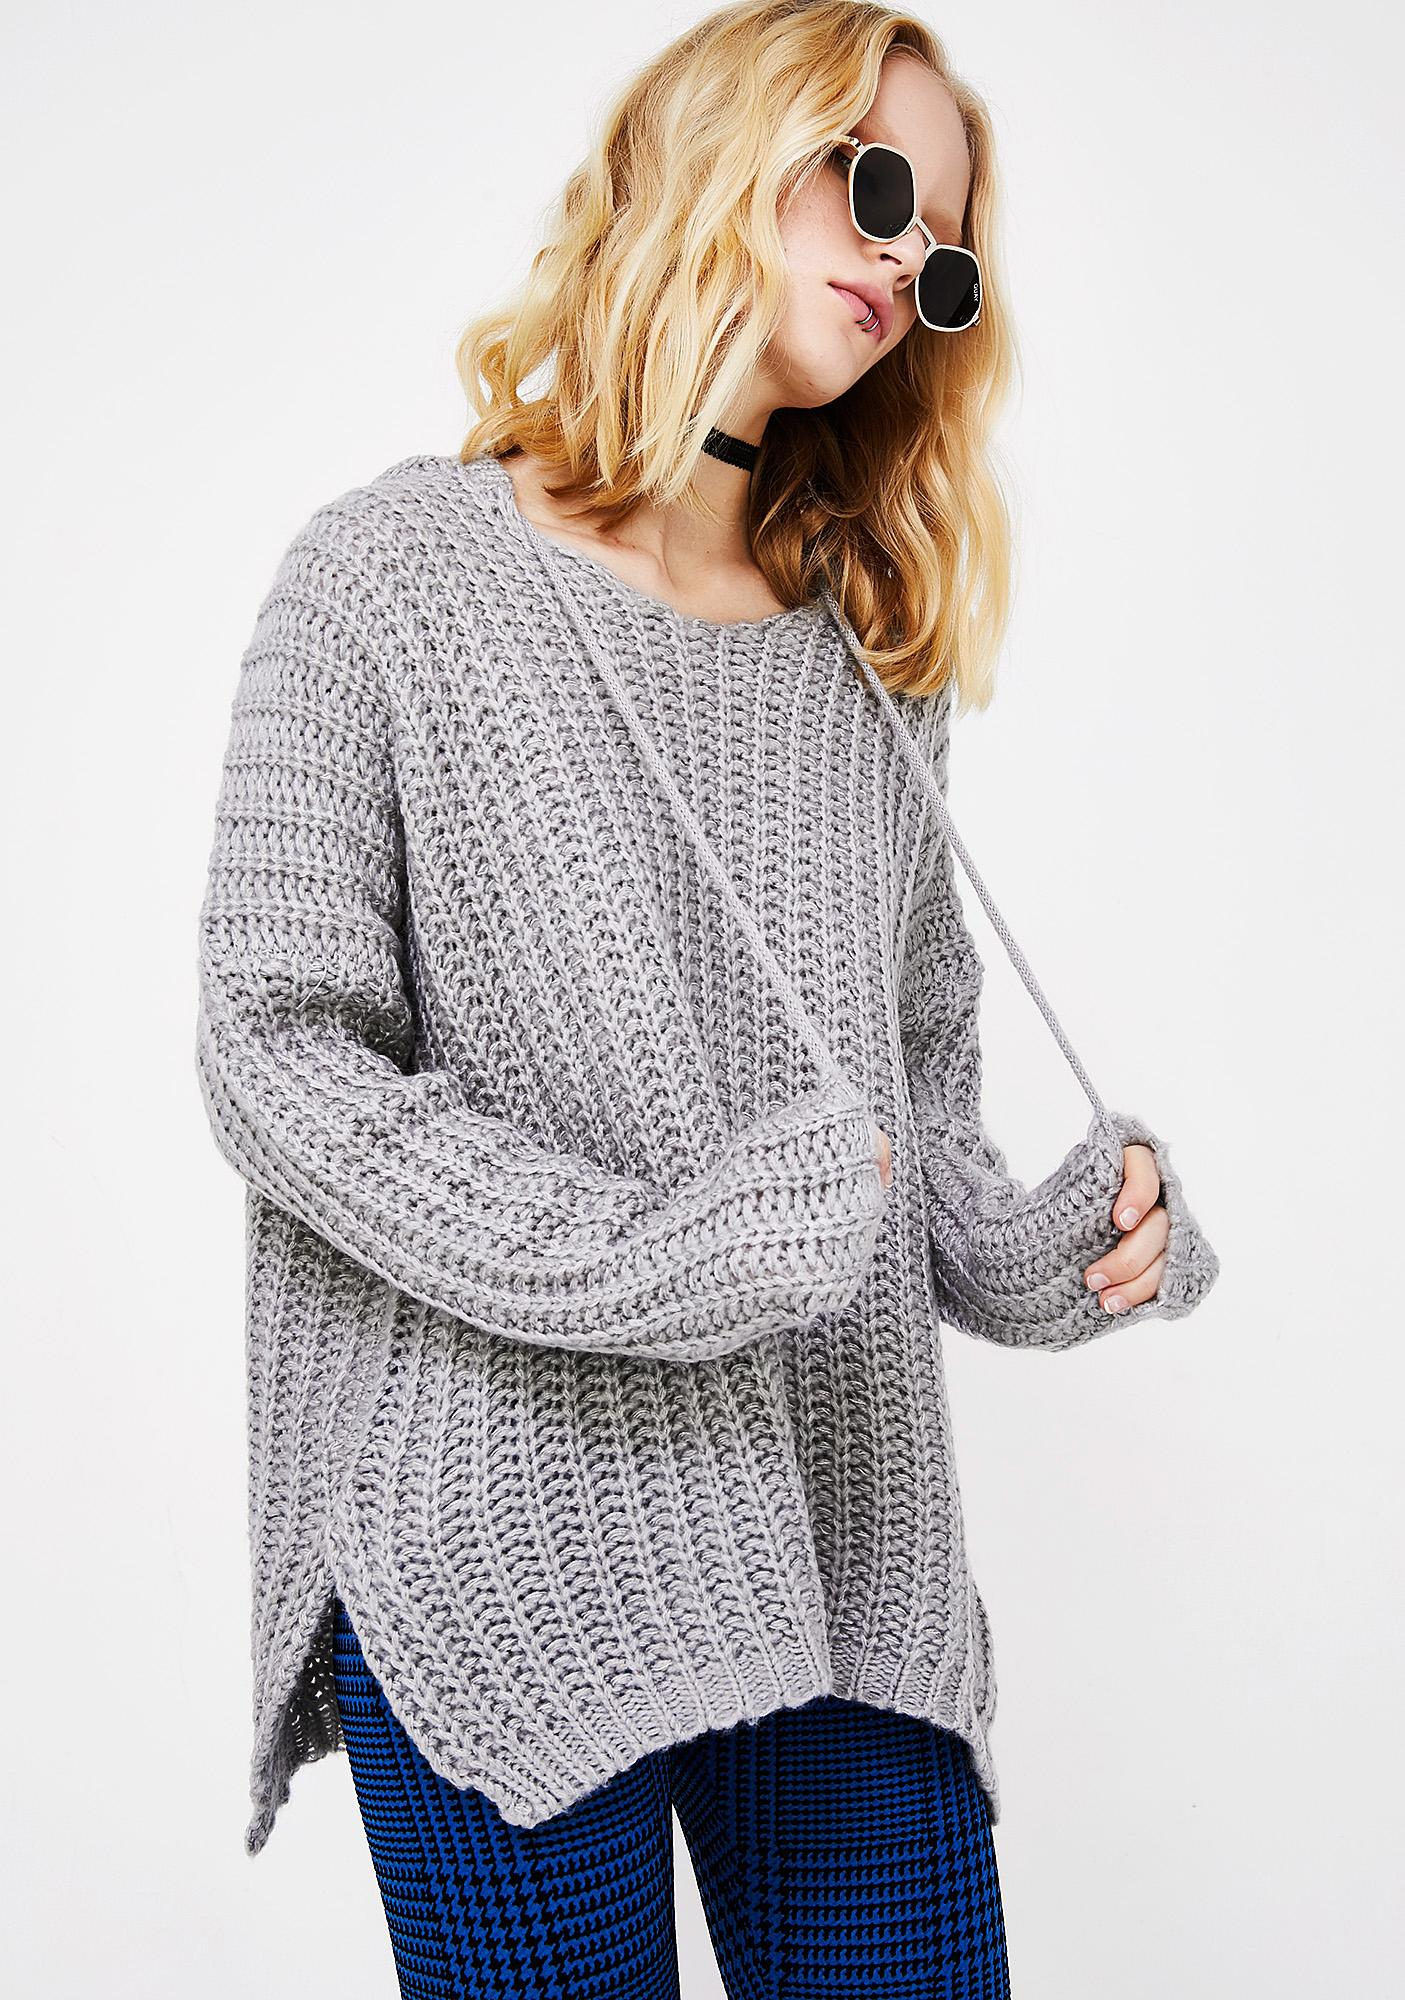 Guess Who Knit Sweater